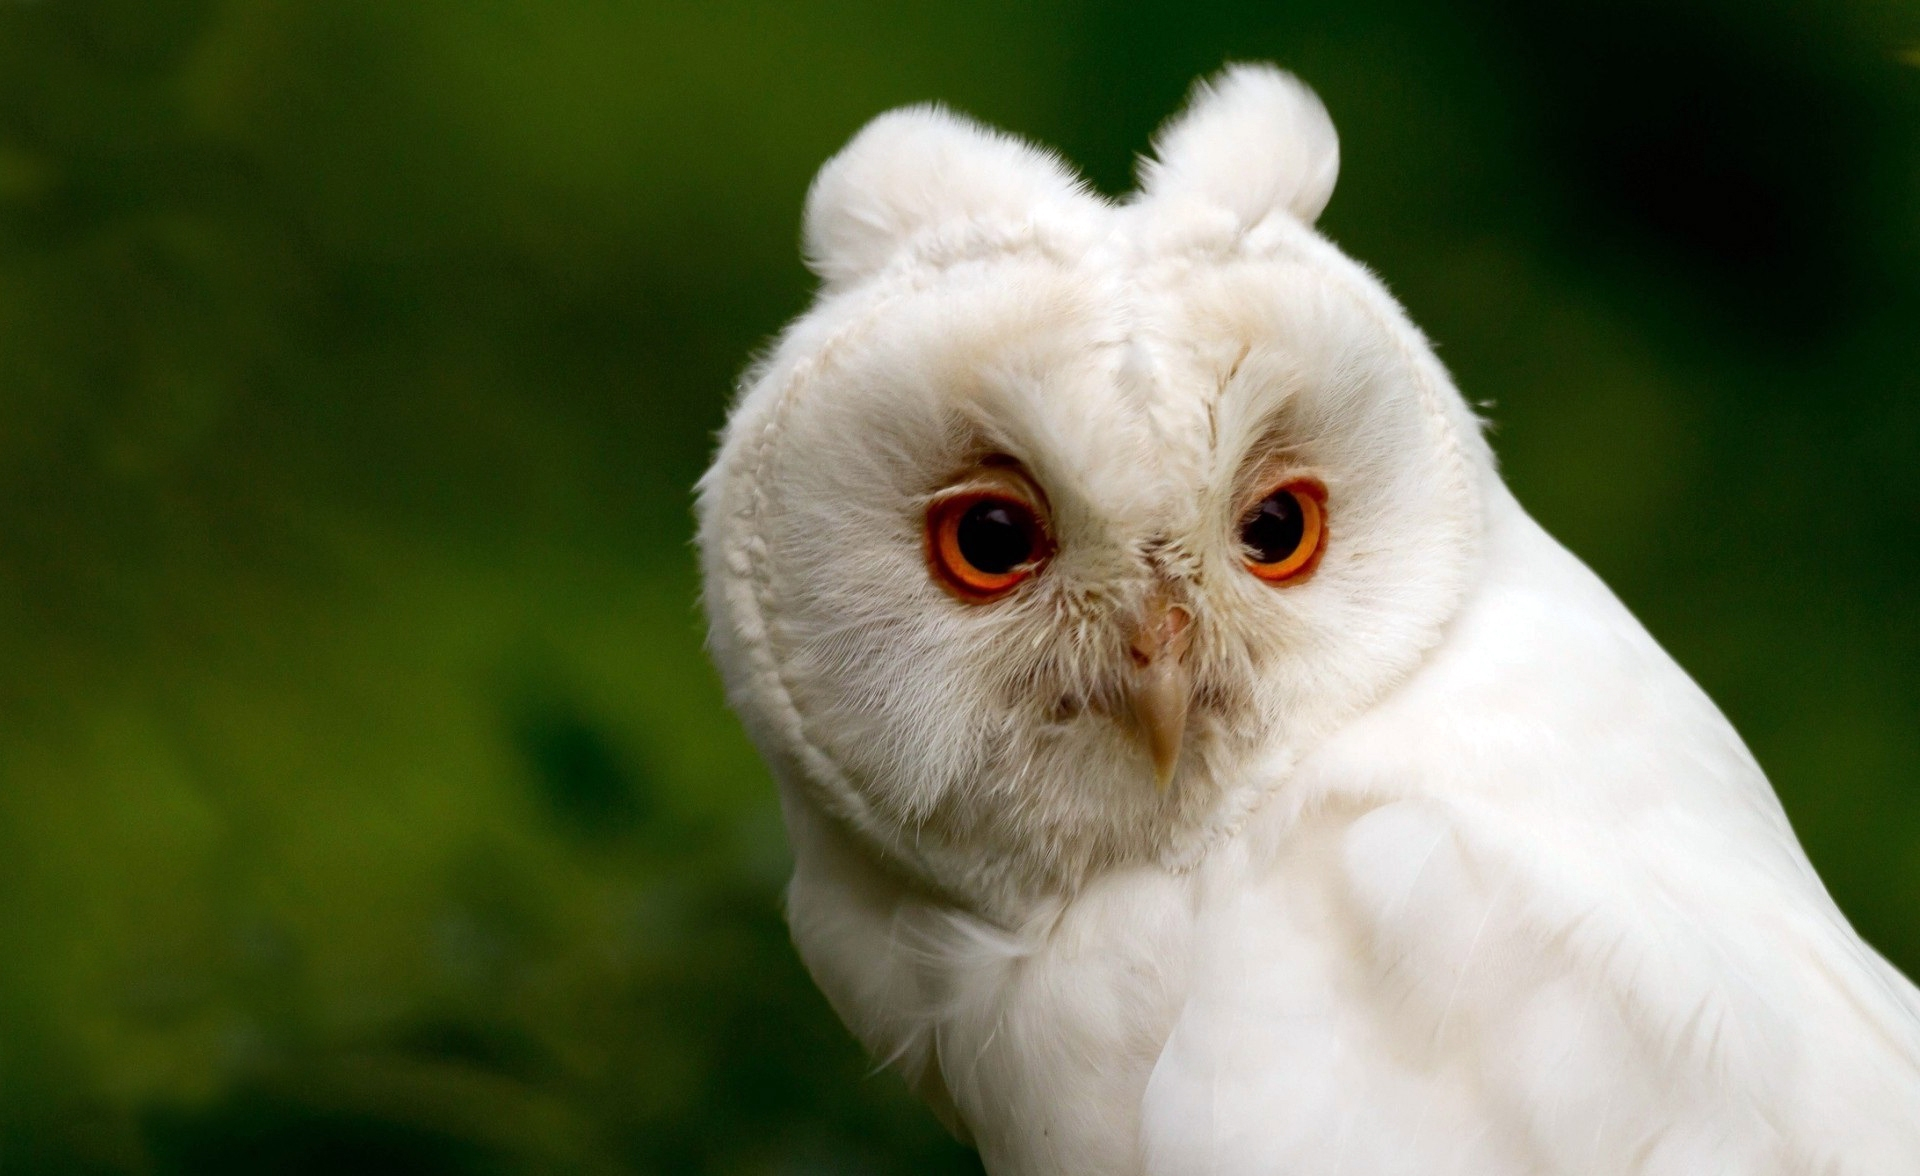 151522 download wallpaper Animals, Background, Owl, Head, Beak, Eyes screensavers and pictures for free